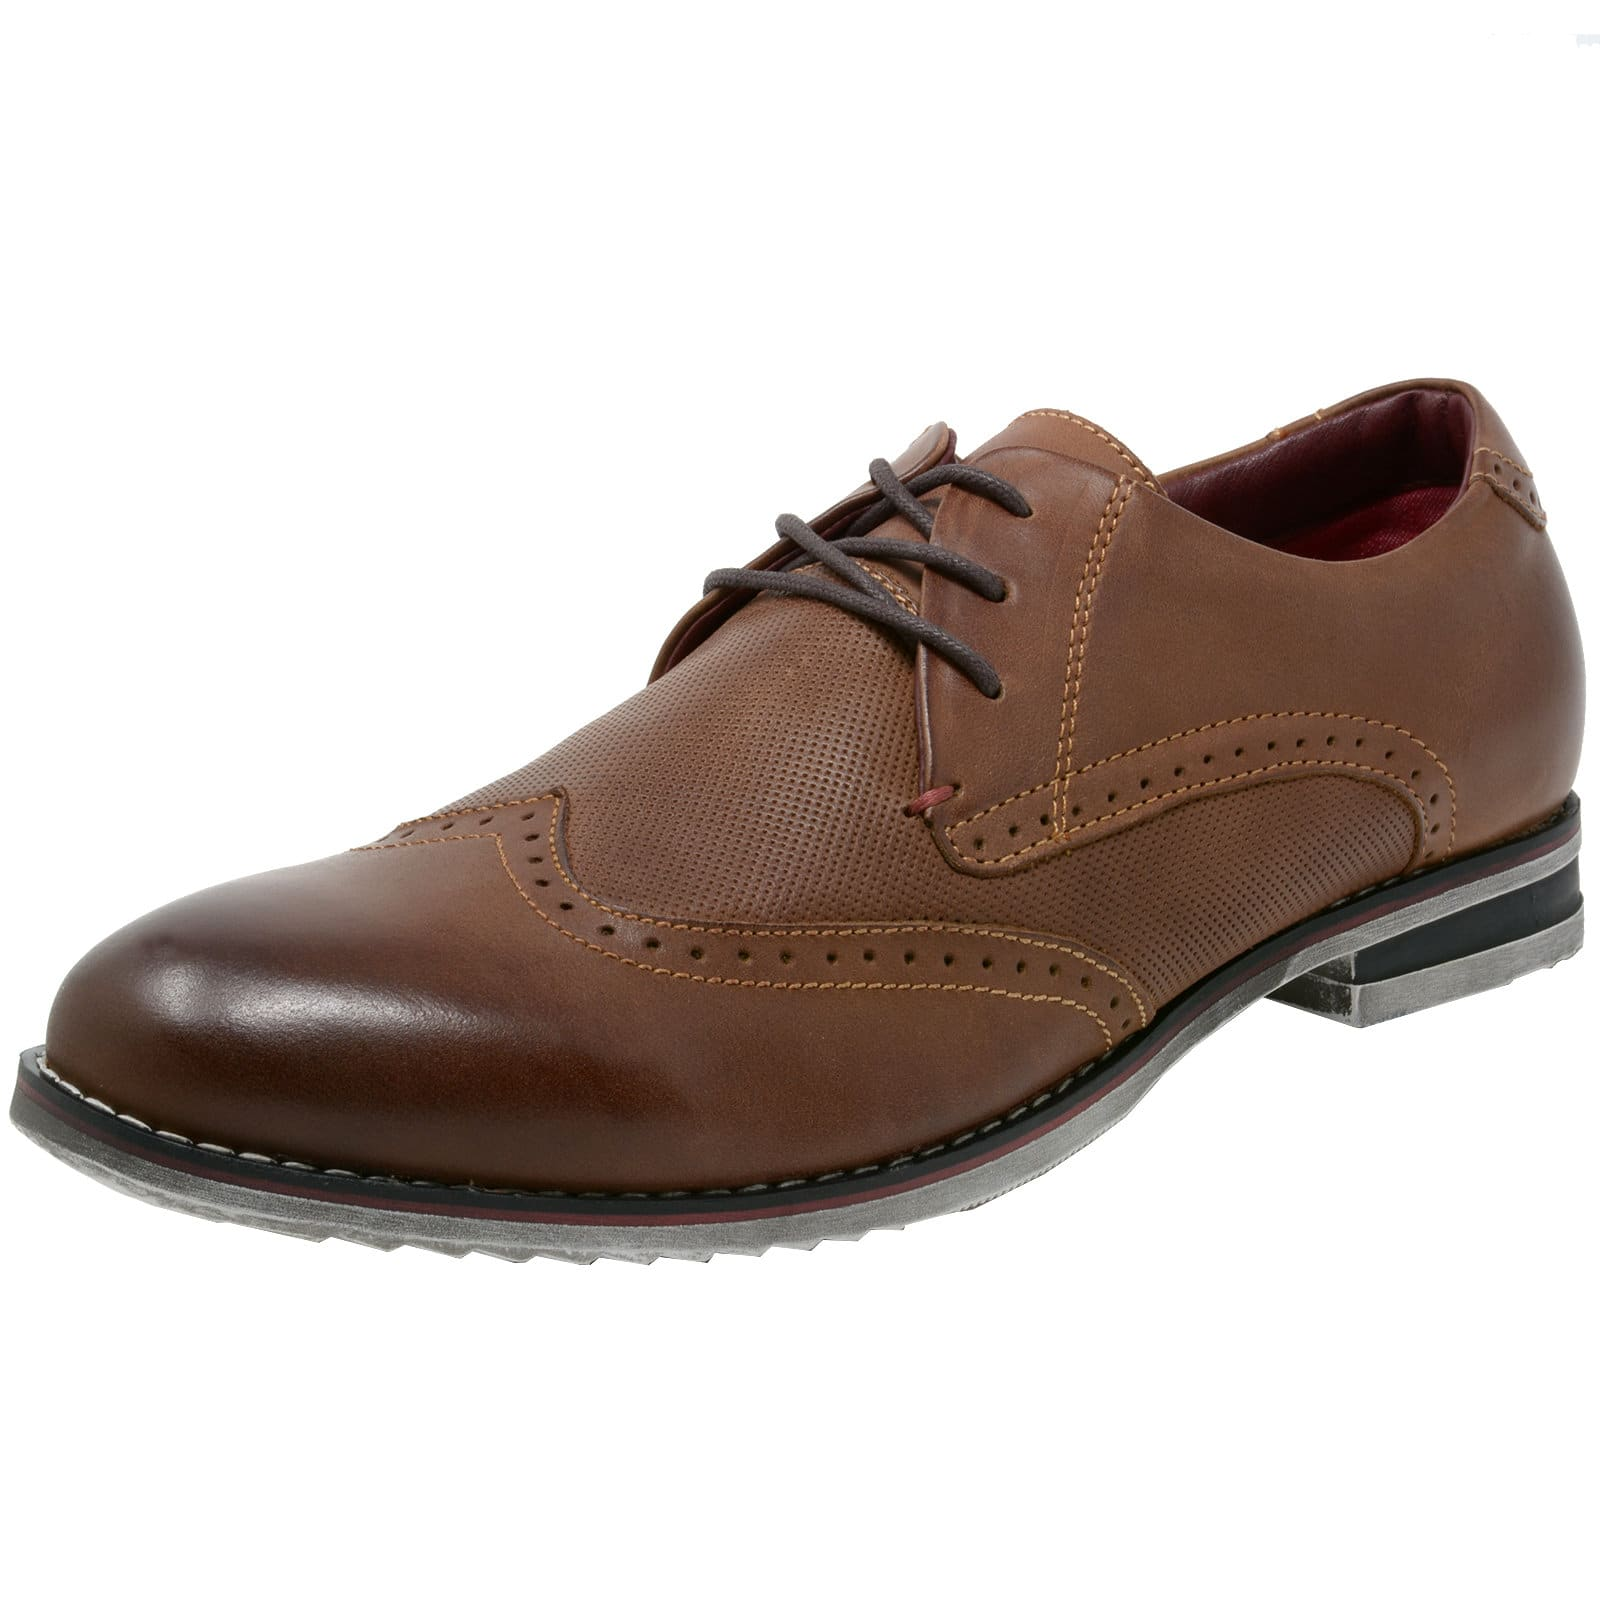 Double Diamond By Alpine Swiss Men's Oxfords Genuine Leather Wingtip Dress Shoes (3 colors) - $19.99 + Free Shipping